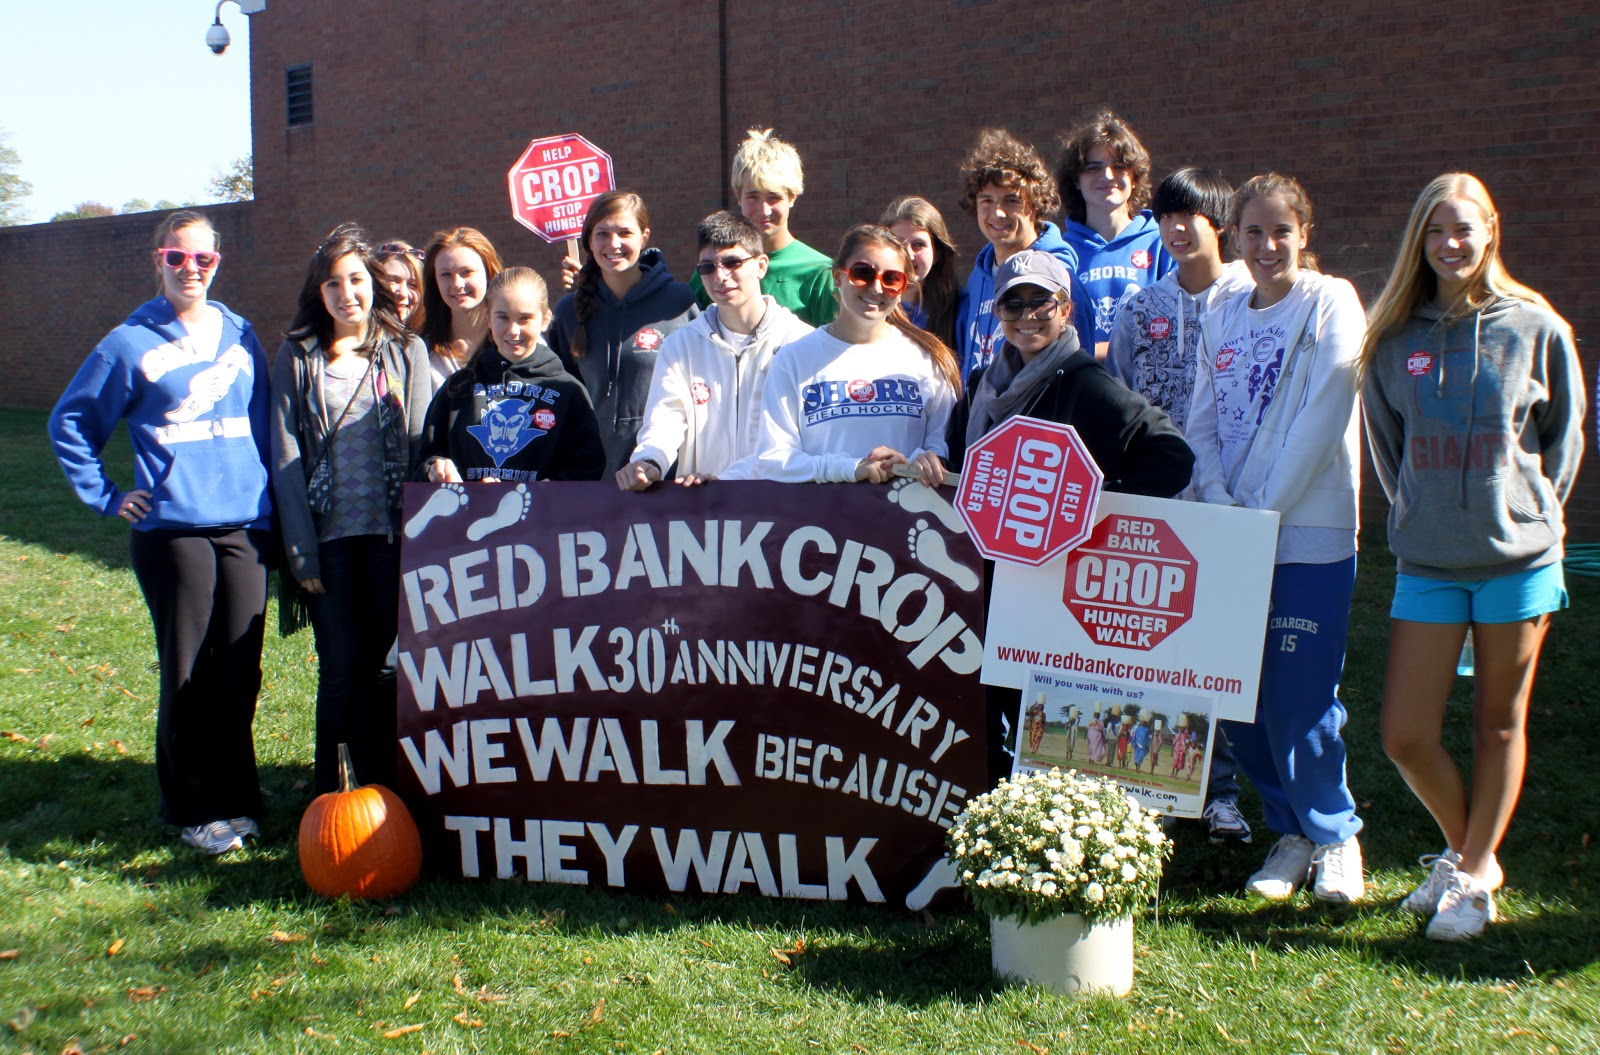 Conners sales group red hat project - Last Year Red Bank Regional High School S Key Club Joined In Our Efforts To Make Our Walk Day A Fun Family Multi Generational Day Of Community Service By